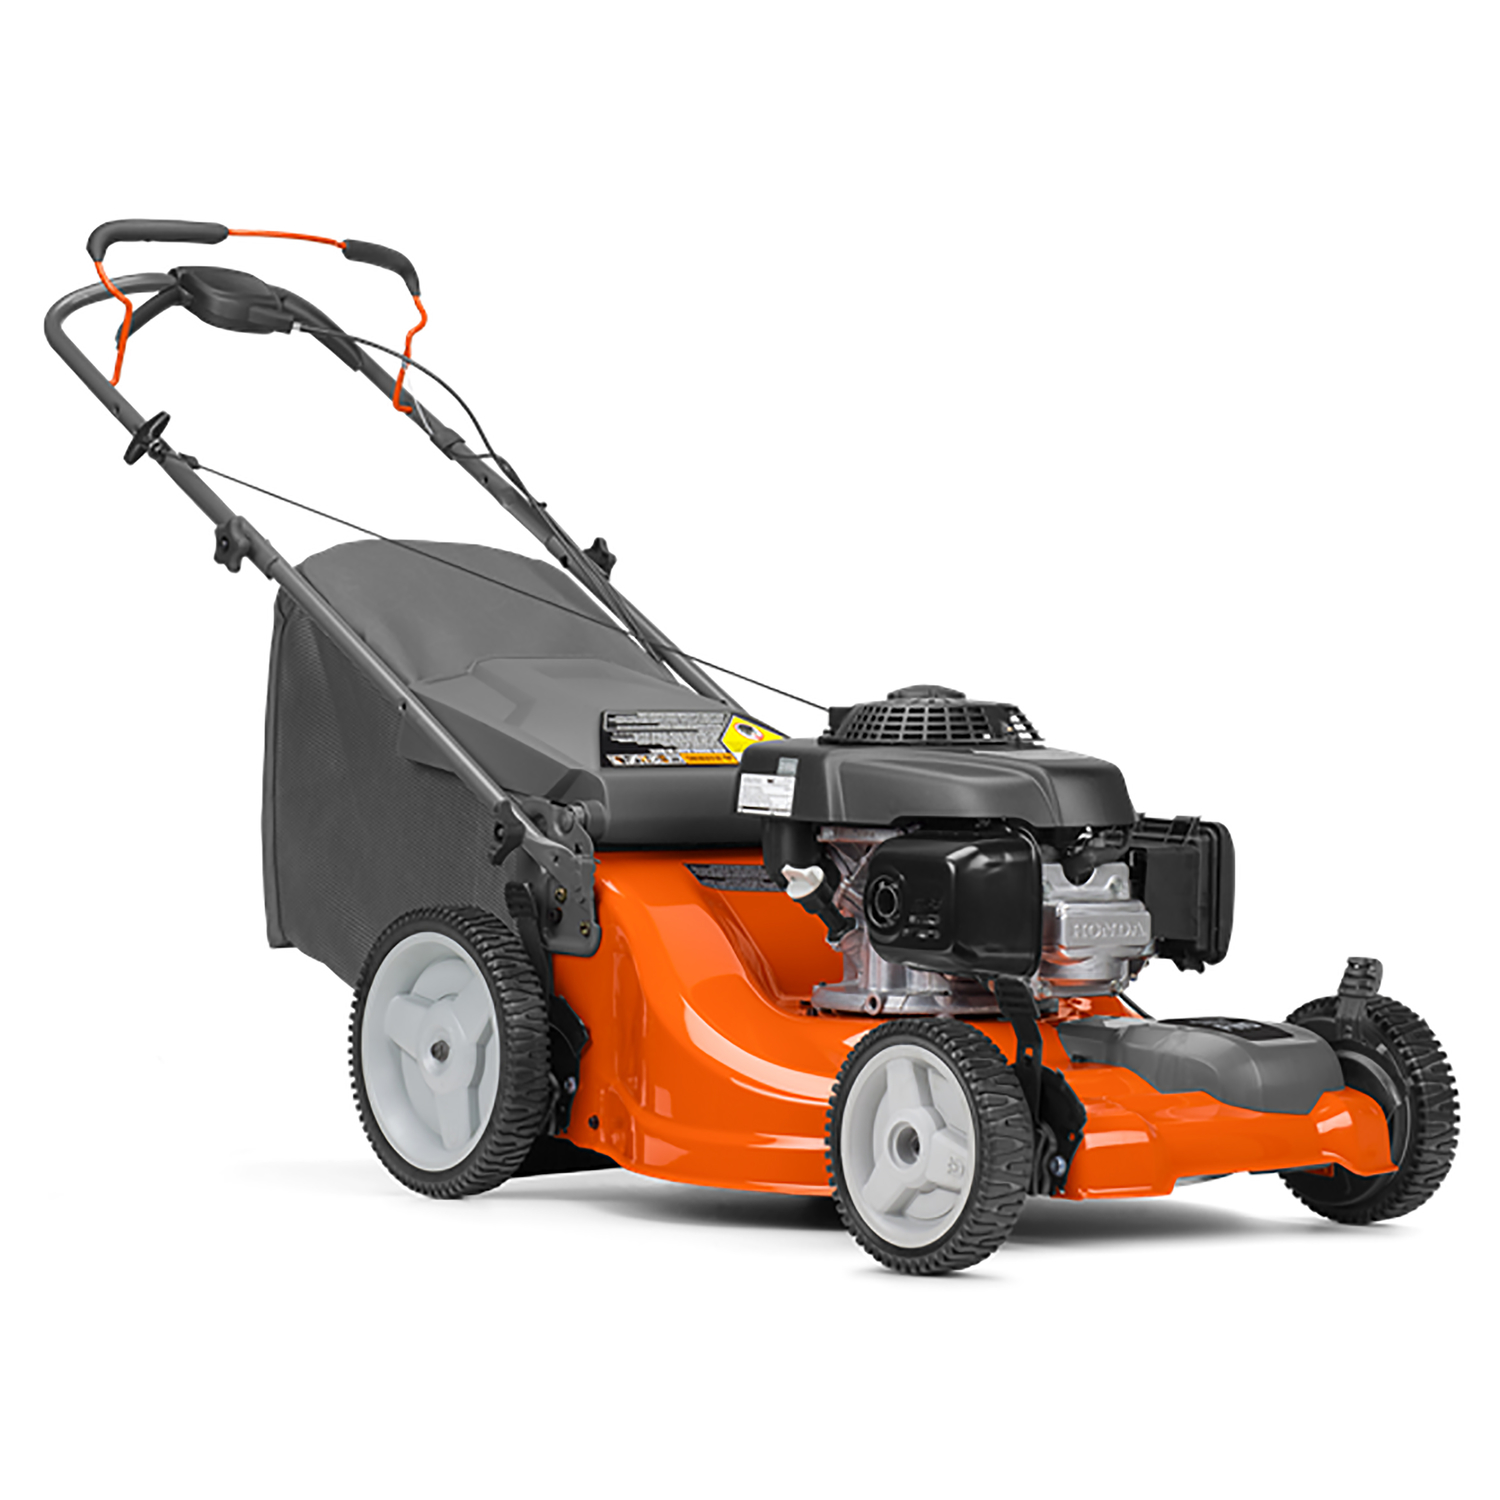 Husqvarna  21 in. W 160 cc Self-Propelled  Mulching Capability Lawn Mower